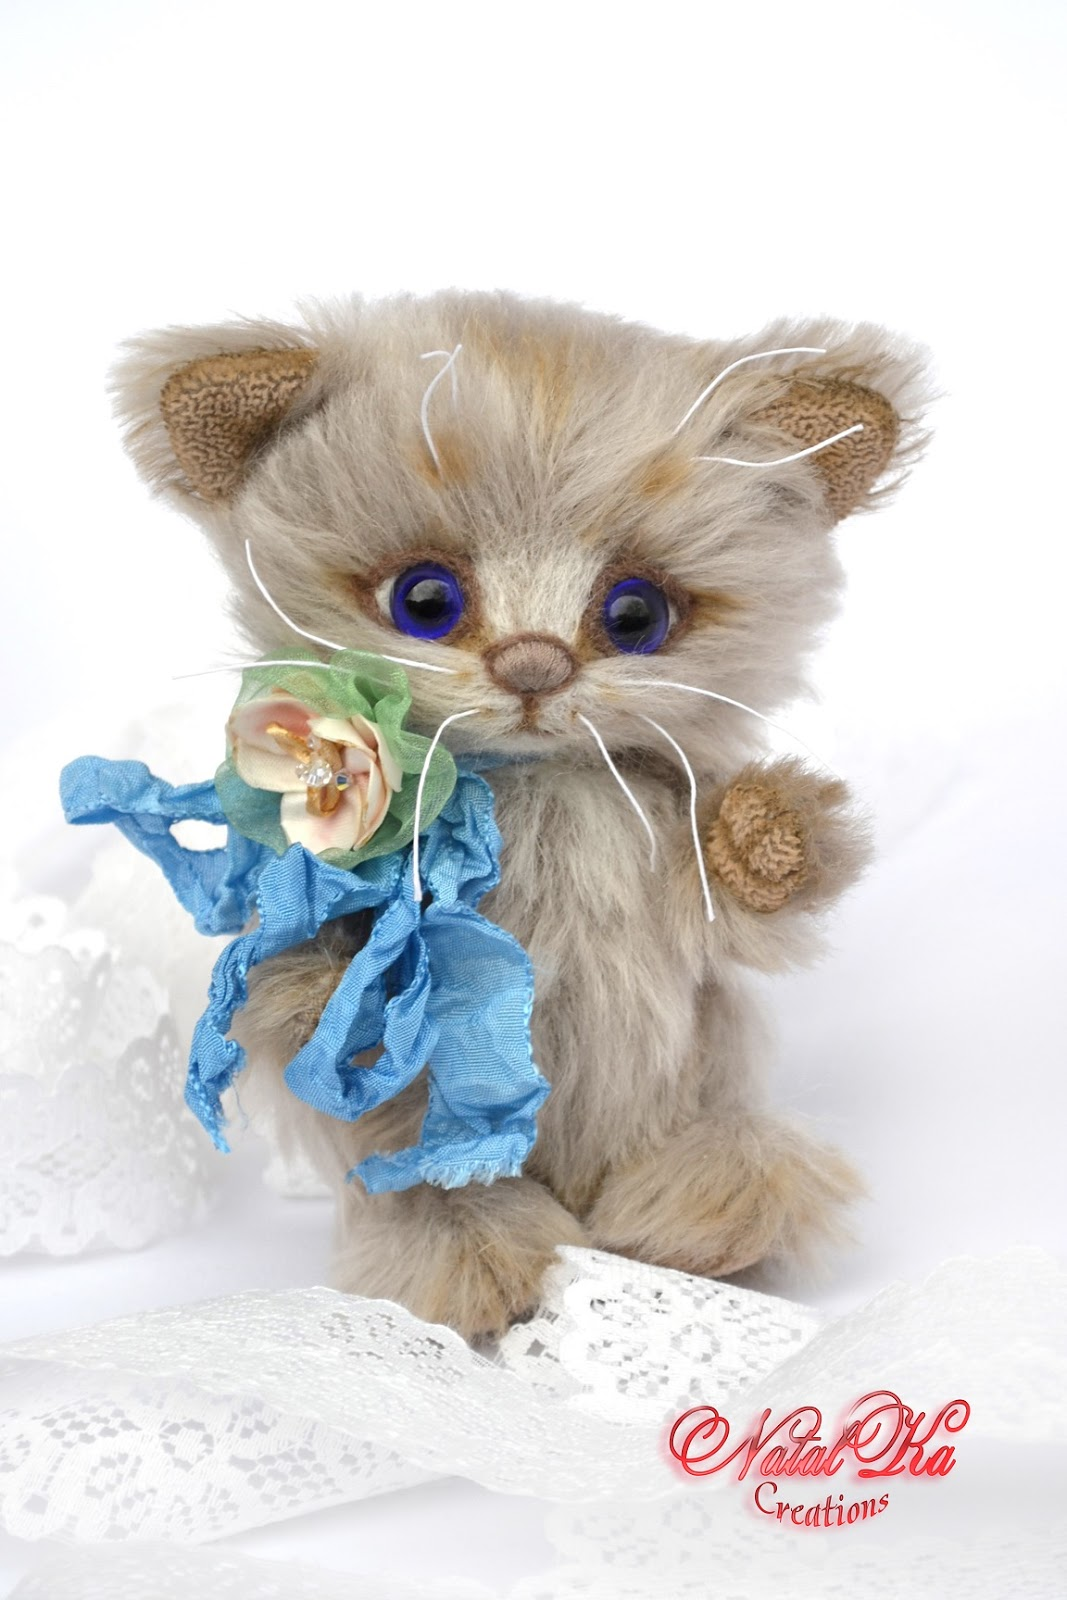 Artist teddy kitty, teddy bear, artist cat, ooak, jointed, teddies with charm, handmade by NatalKa Creations. Künstlerteddy Kätzchen, Katze, Künstlerbär, Teddybär, Unikat, Mohair, handgemacht von NatalKa Creations.